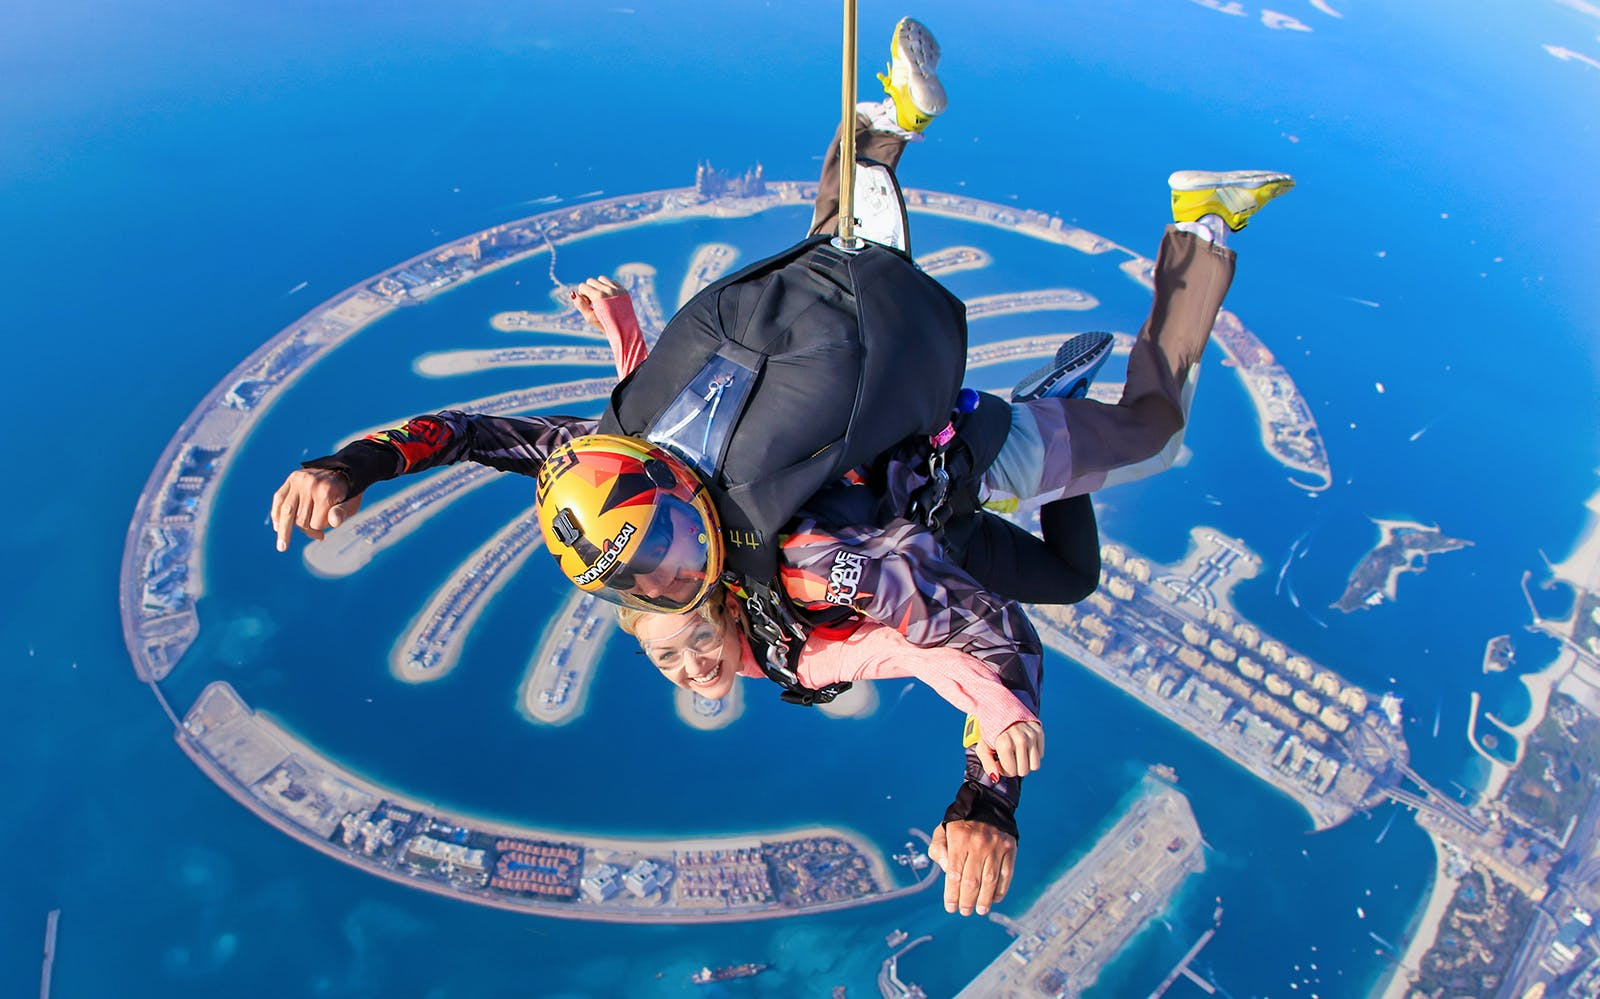 SkyDive Dubai: Tandem Skydiving at Palm Drop Zone